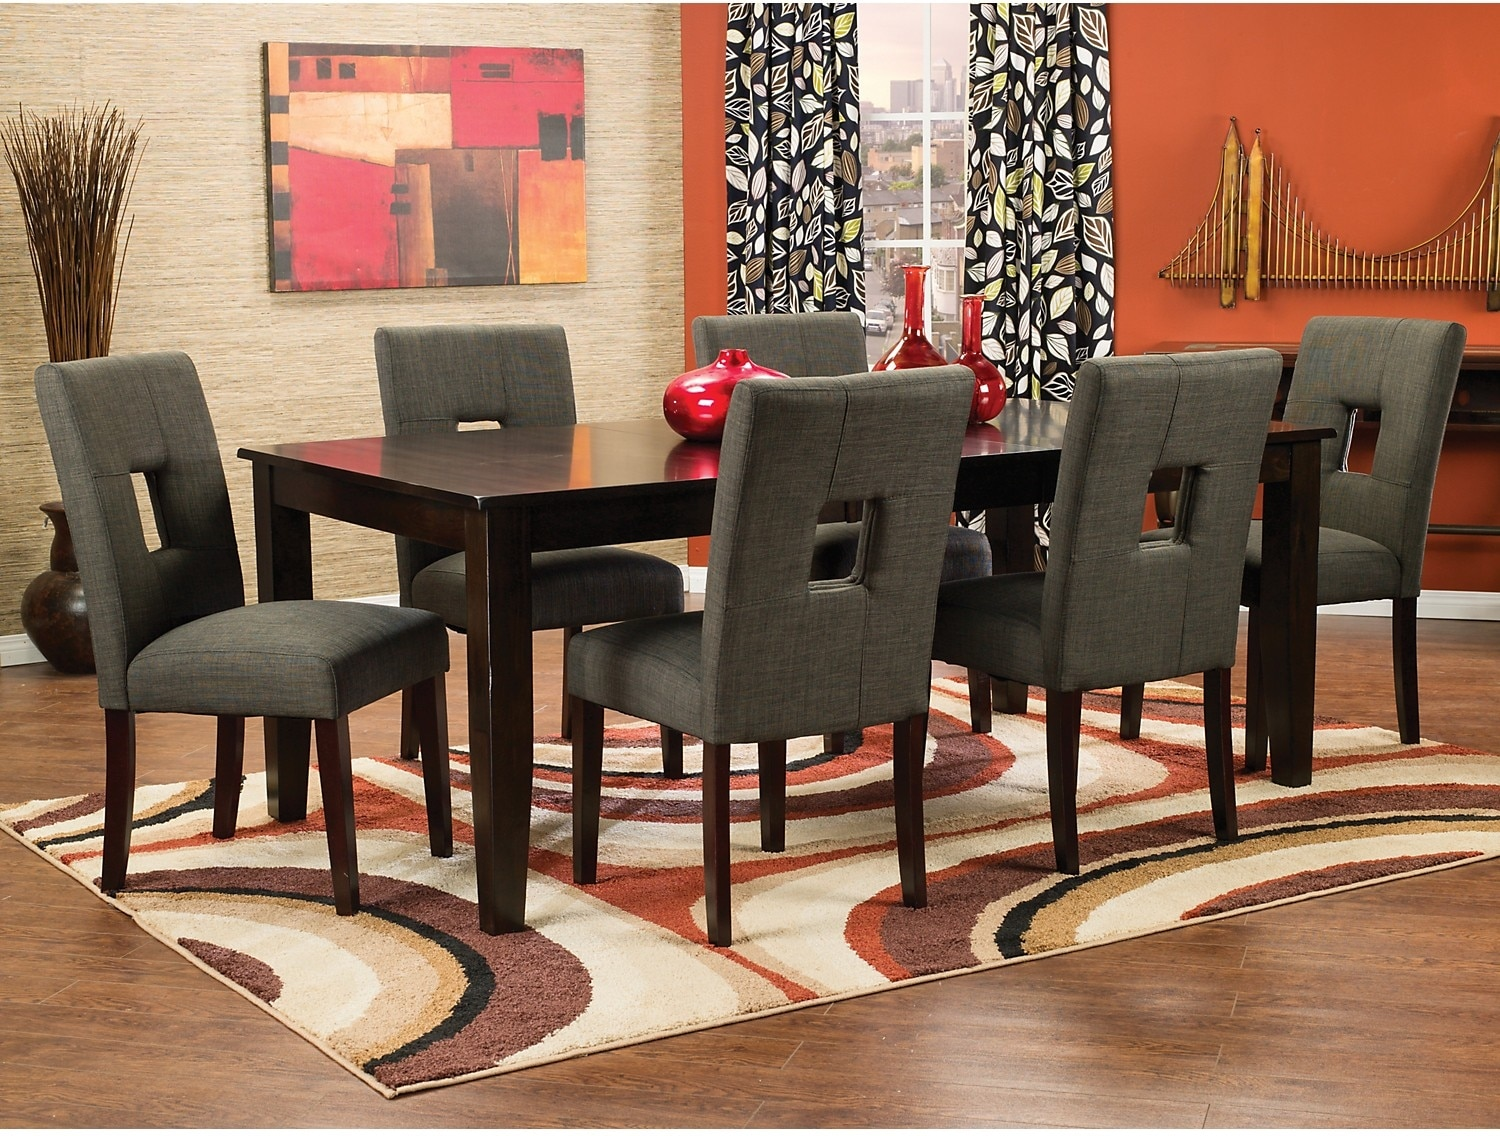 Dakota 8-Piece Dining Package with Grey Chairs